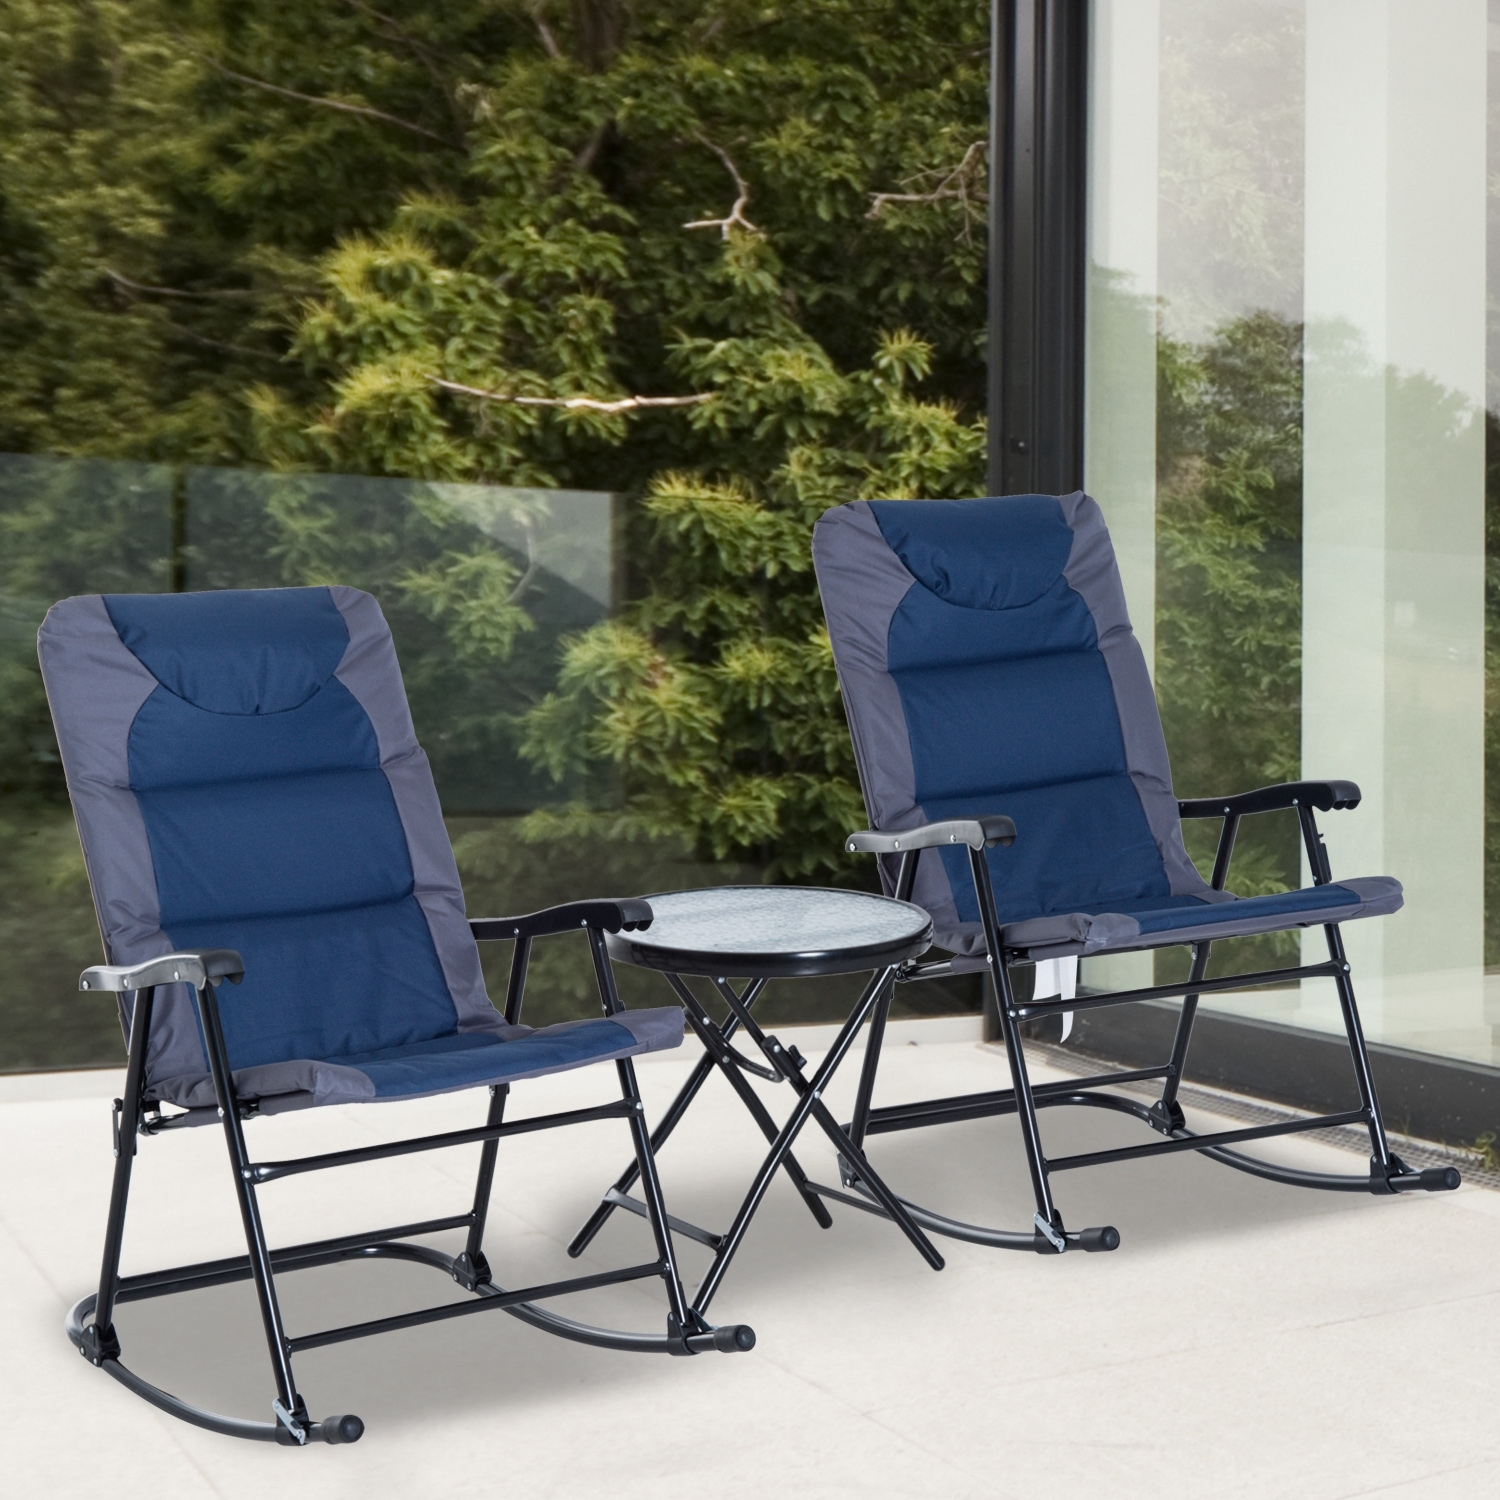 Outsunny 3 Piece Folding Outdoor Rocking Chair And Table Set Patio Inside Outdoor Rocking Chairs With Table (#8 of 15)